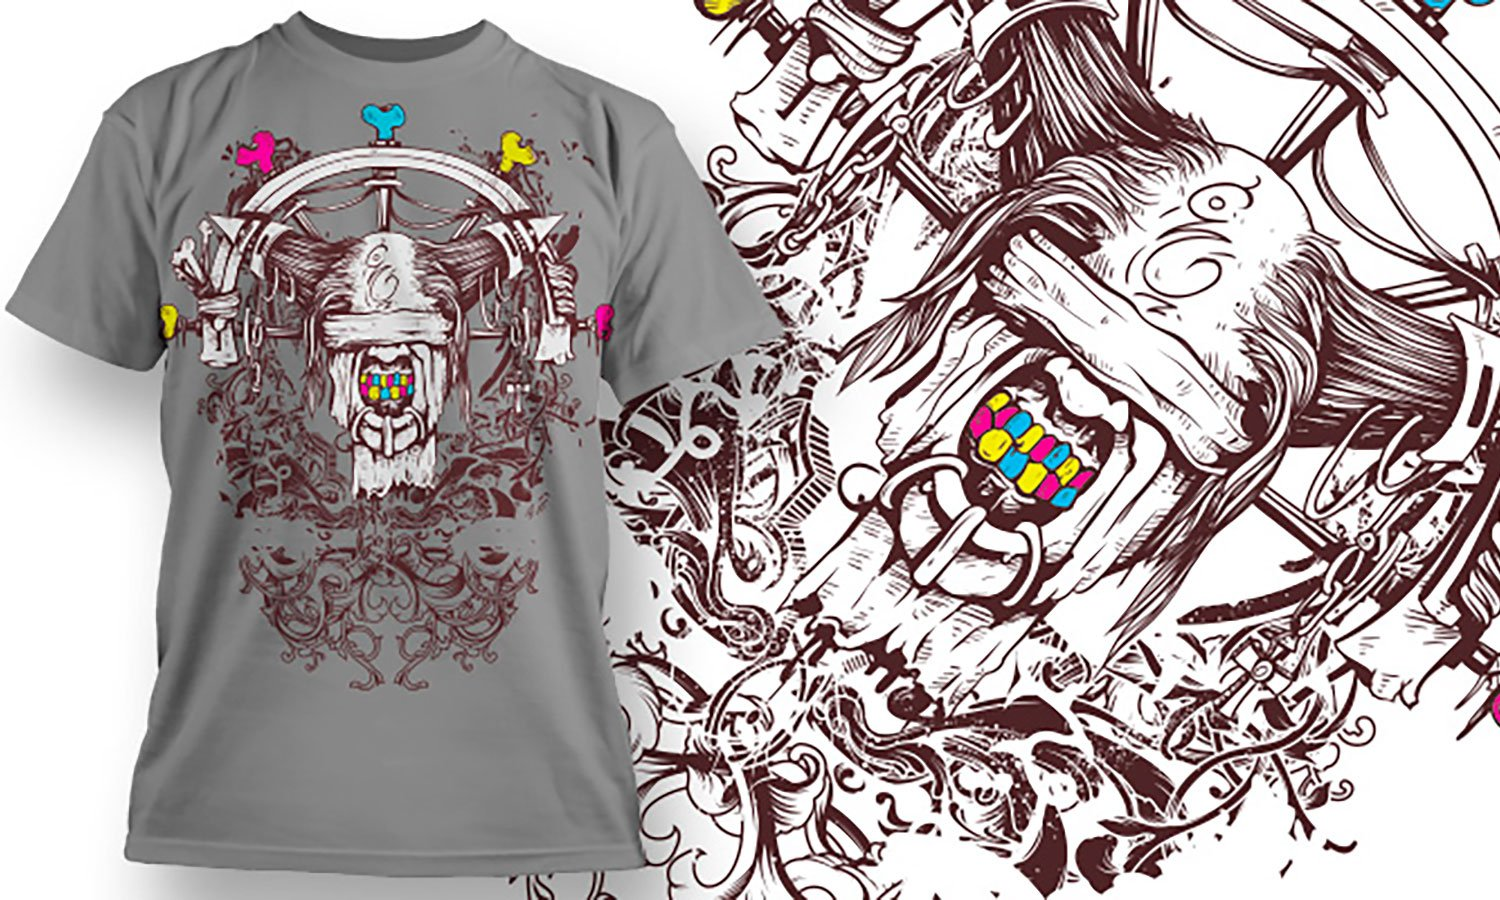 Modern Tribal - Printed T-Shirt for Men, Women and Kids - TS033